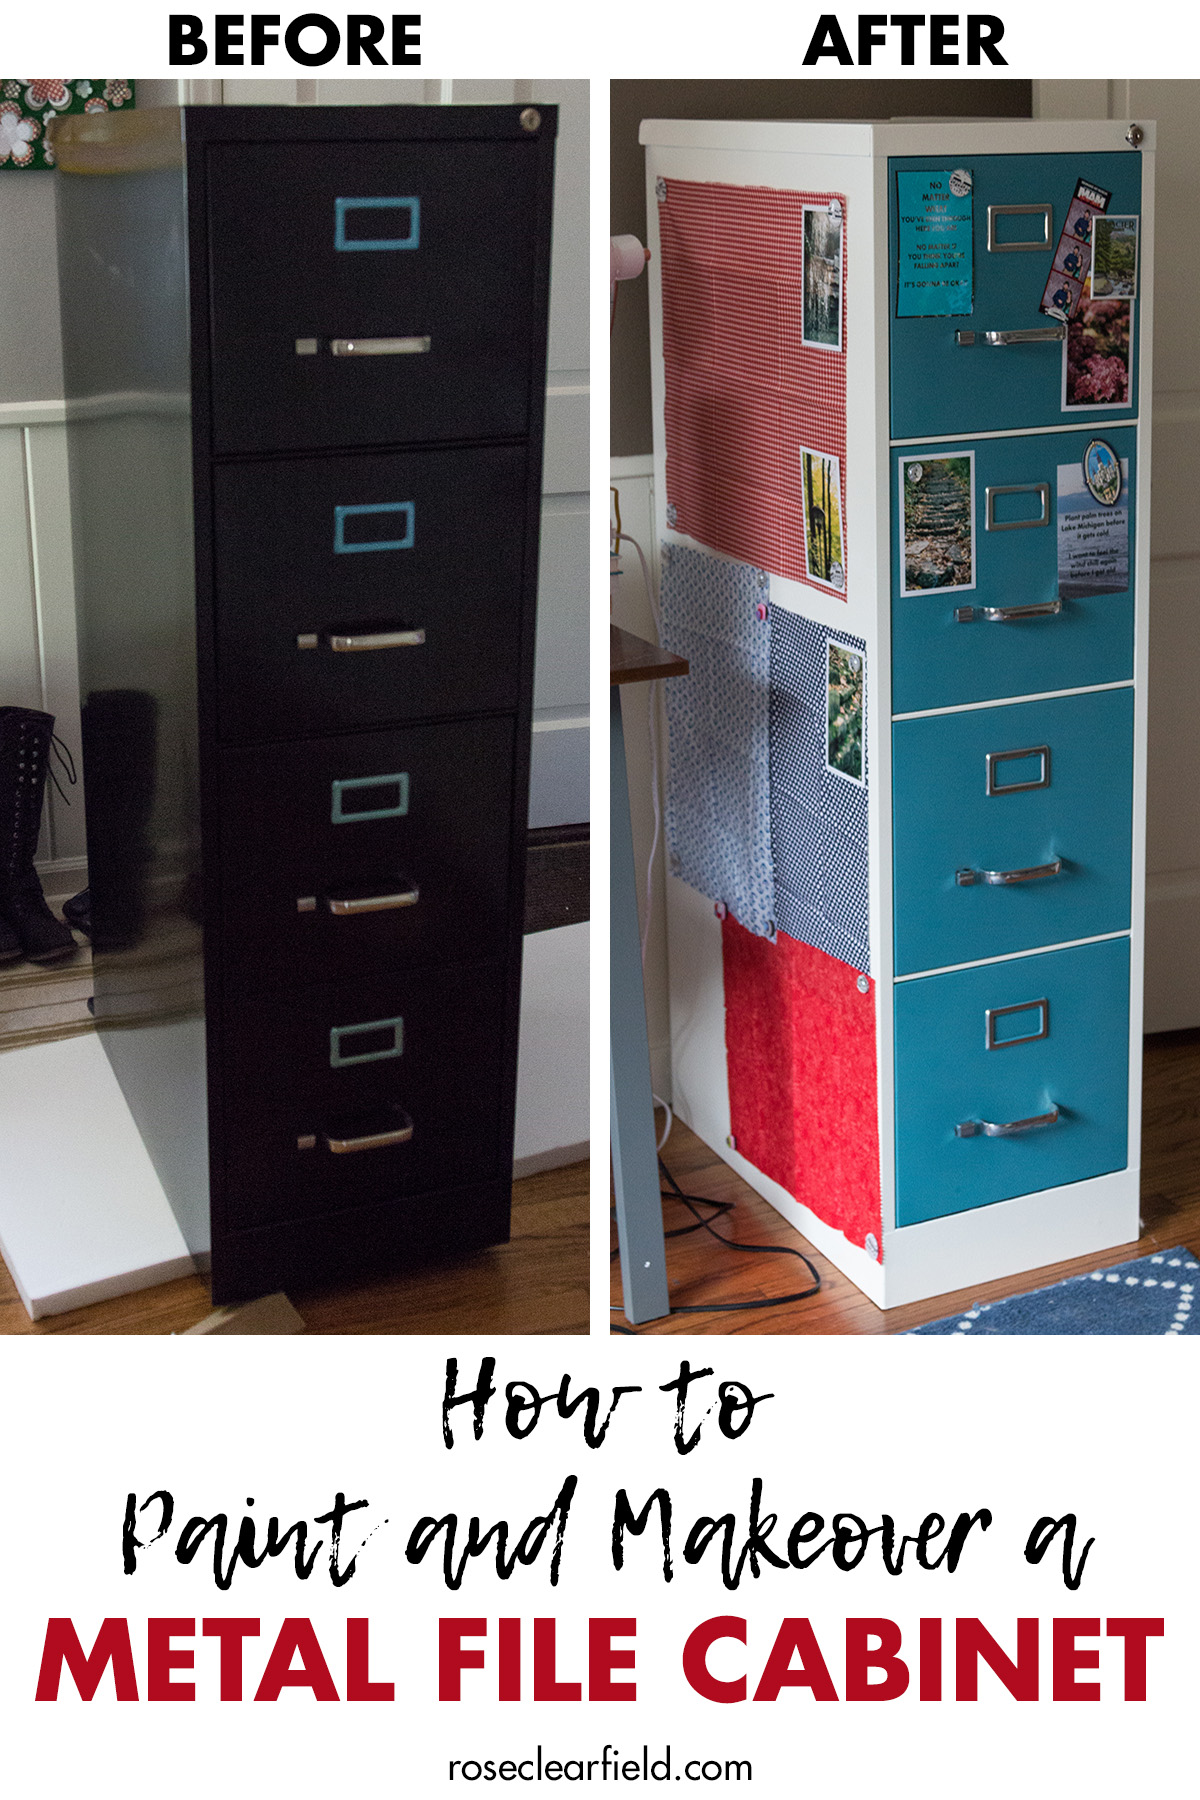 How to Paint and Makeover a Metal File Cabinet Before and After